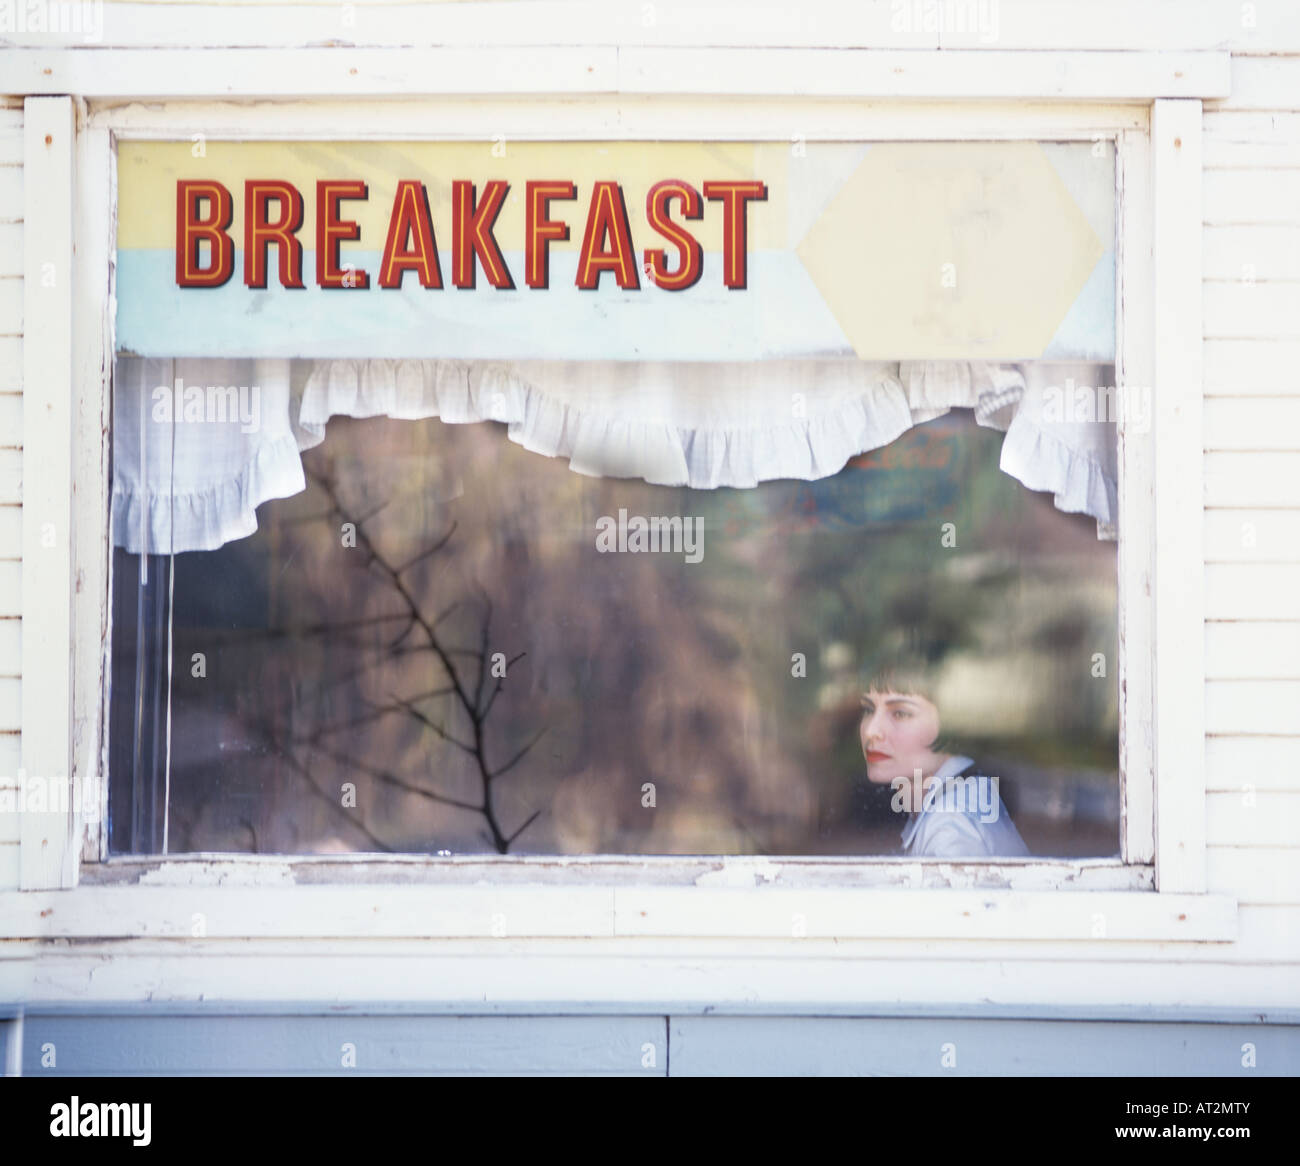 fashionable woman eating breakfast in cafe looks through window with reflections and sign that says breakfast - Stock Image